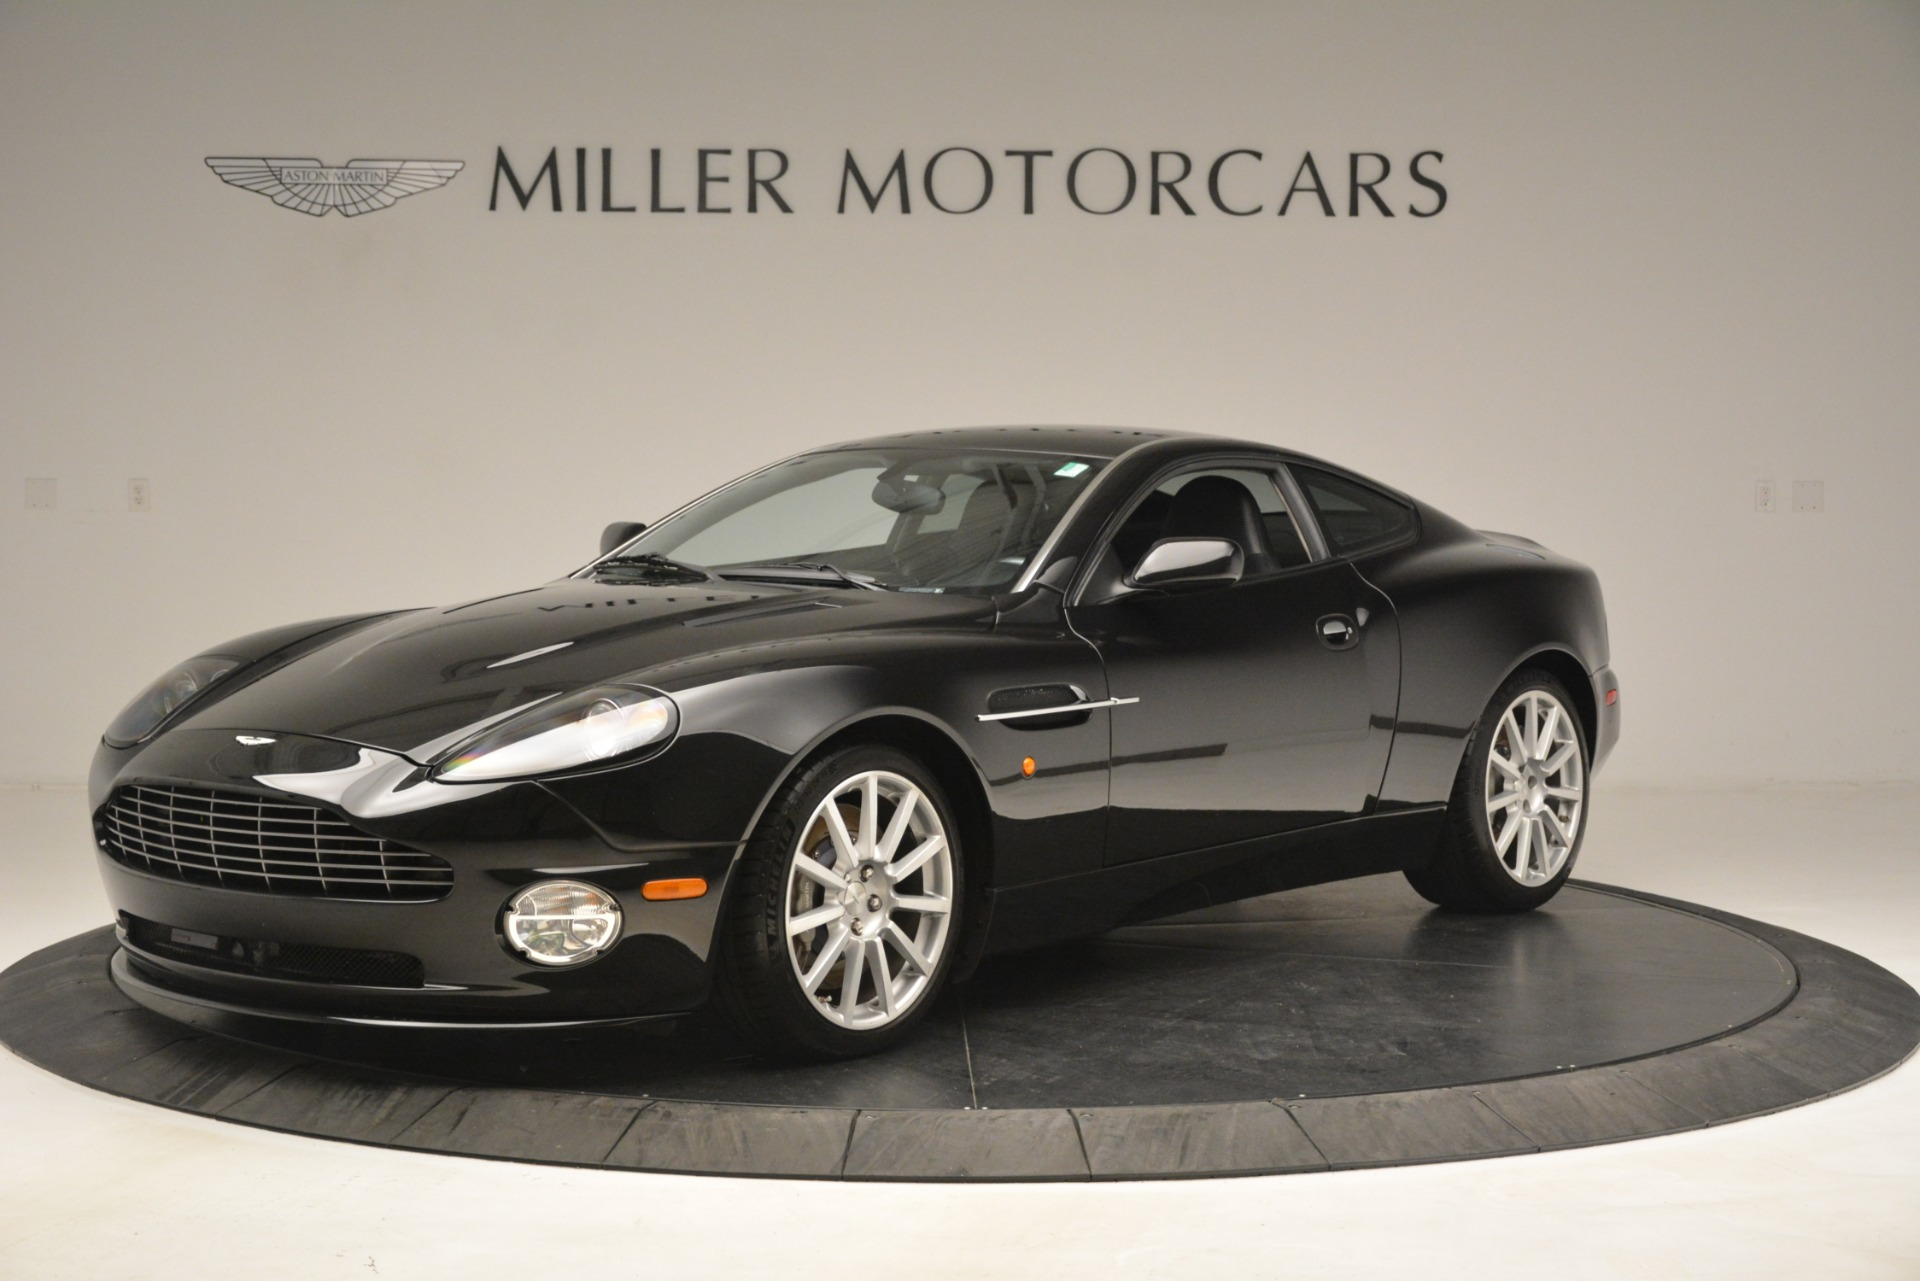 Used 2005 Aston Martin V12 Vanquish S For Sale In Greenwich, CT